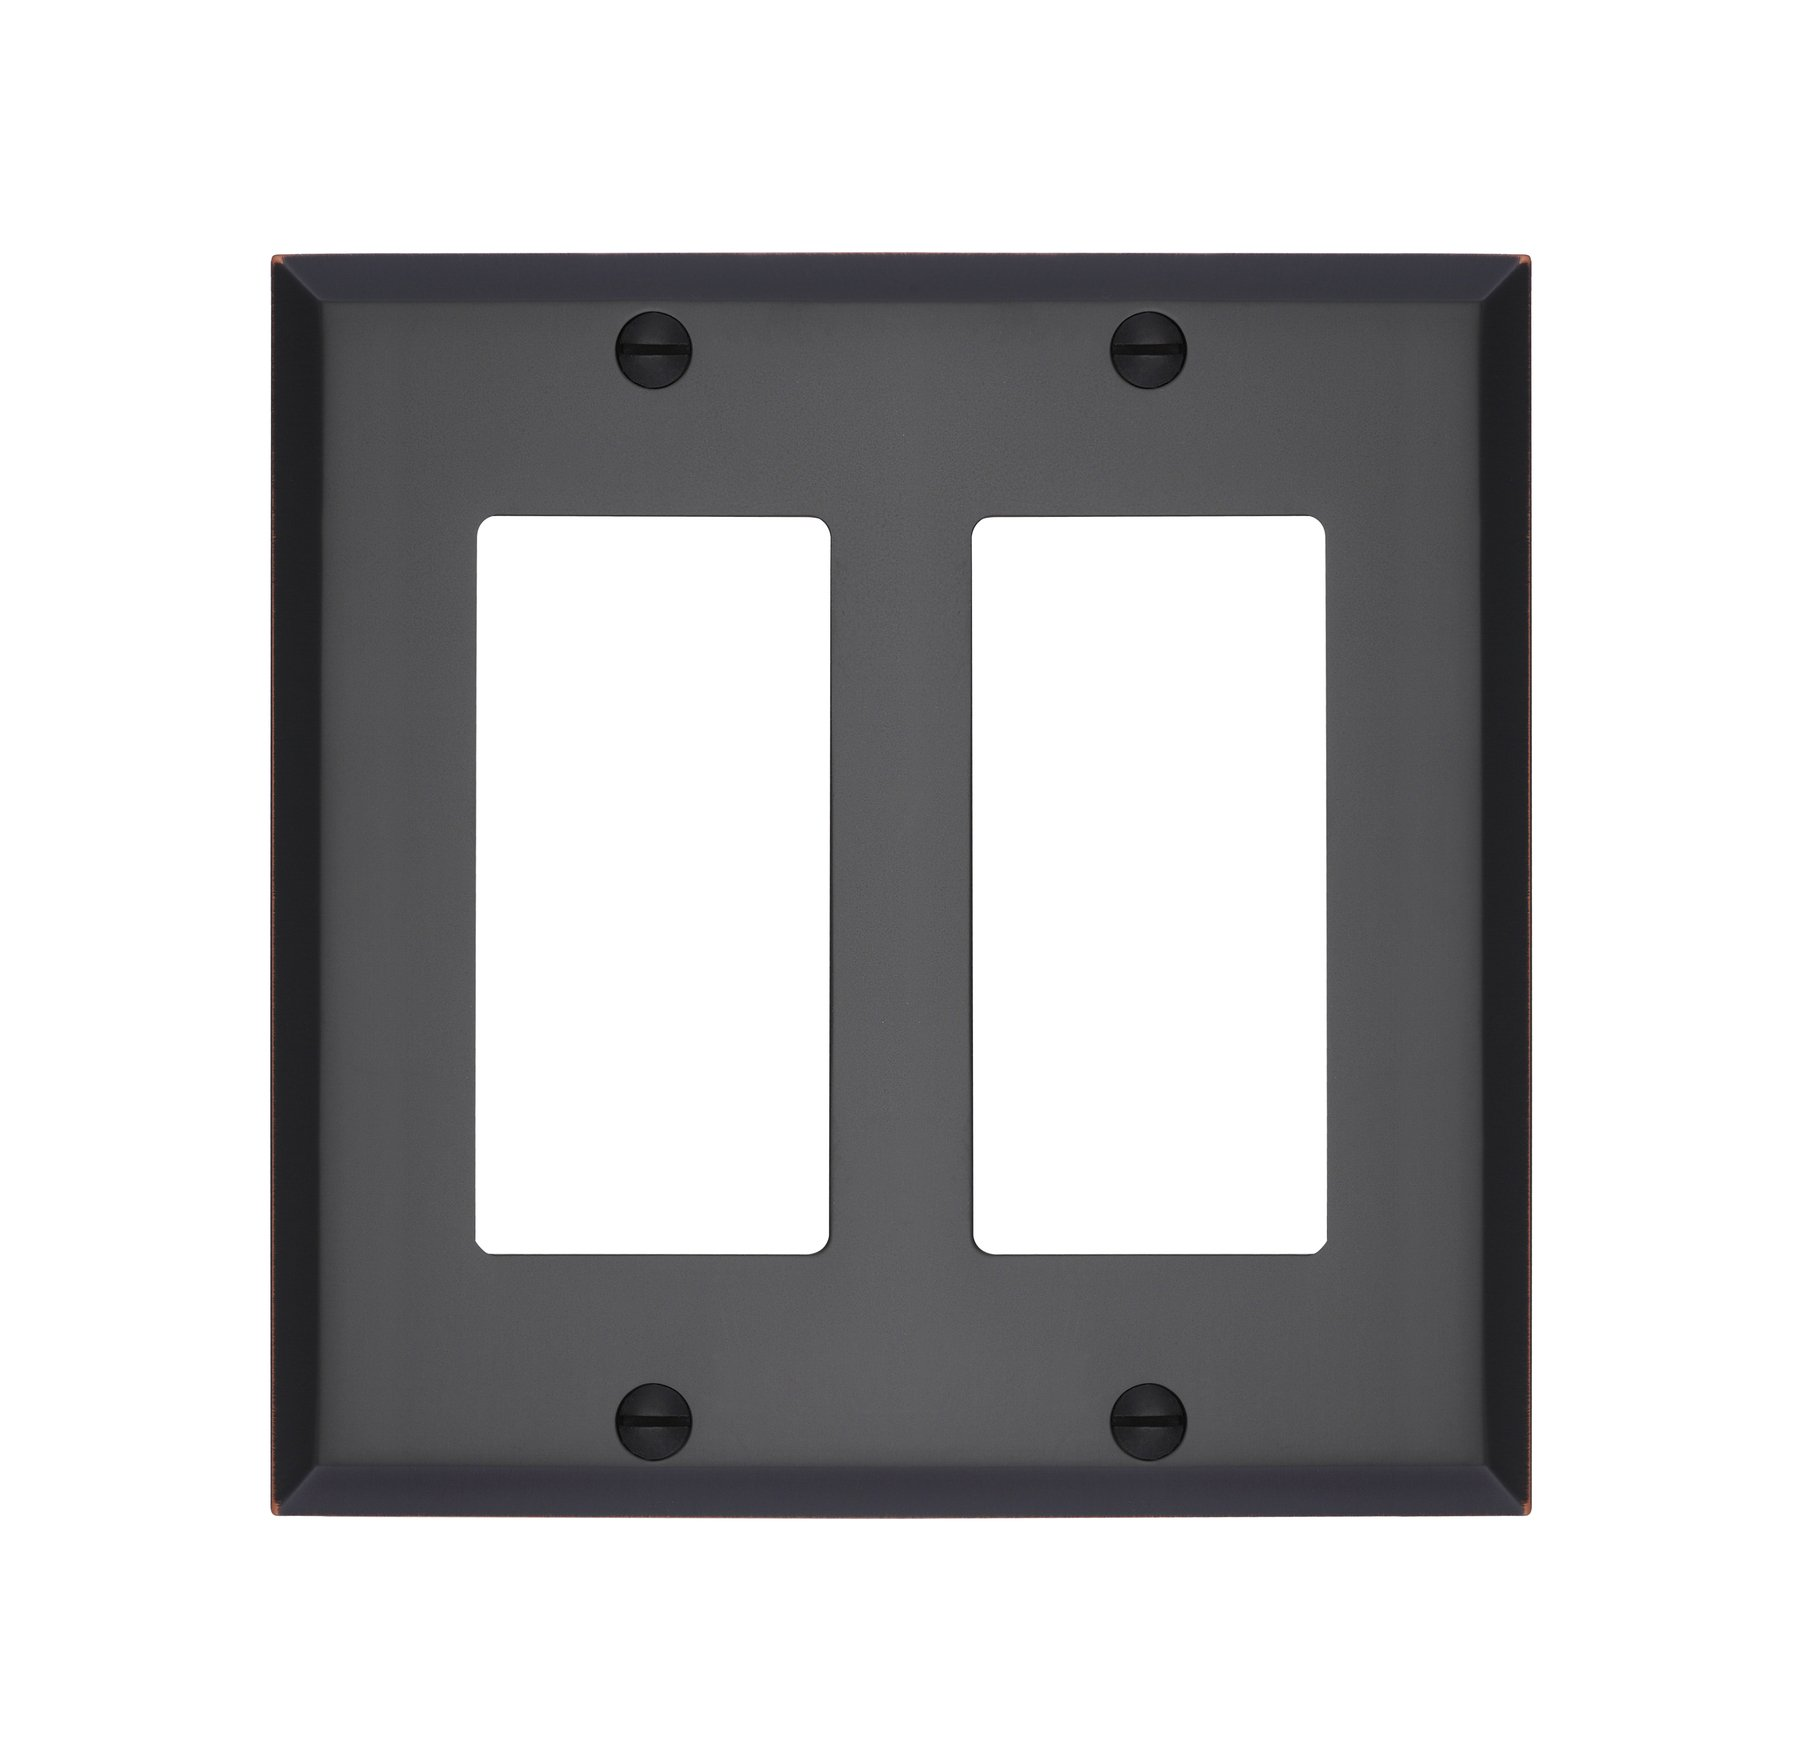 MAYKKE Graham Double Rocker Light Switch Cover | Premium 2 Gang Solid Brass Wall Plate | 5 Color Finishes to Choose From | Oil-Rubbed Bronze, ALA1020204